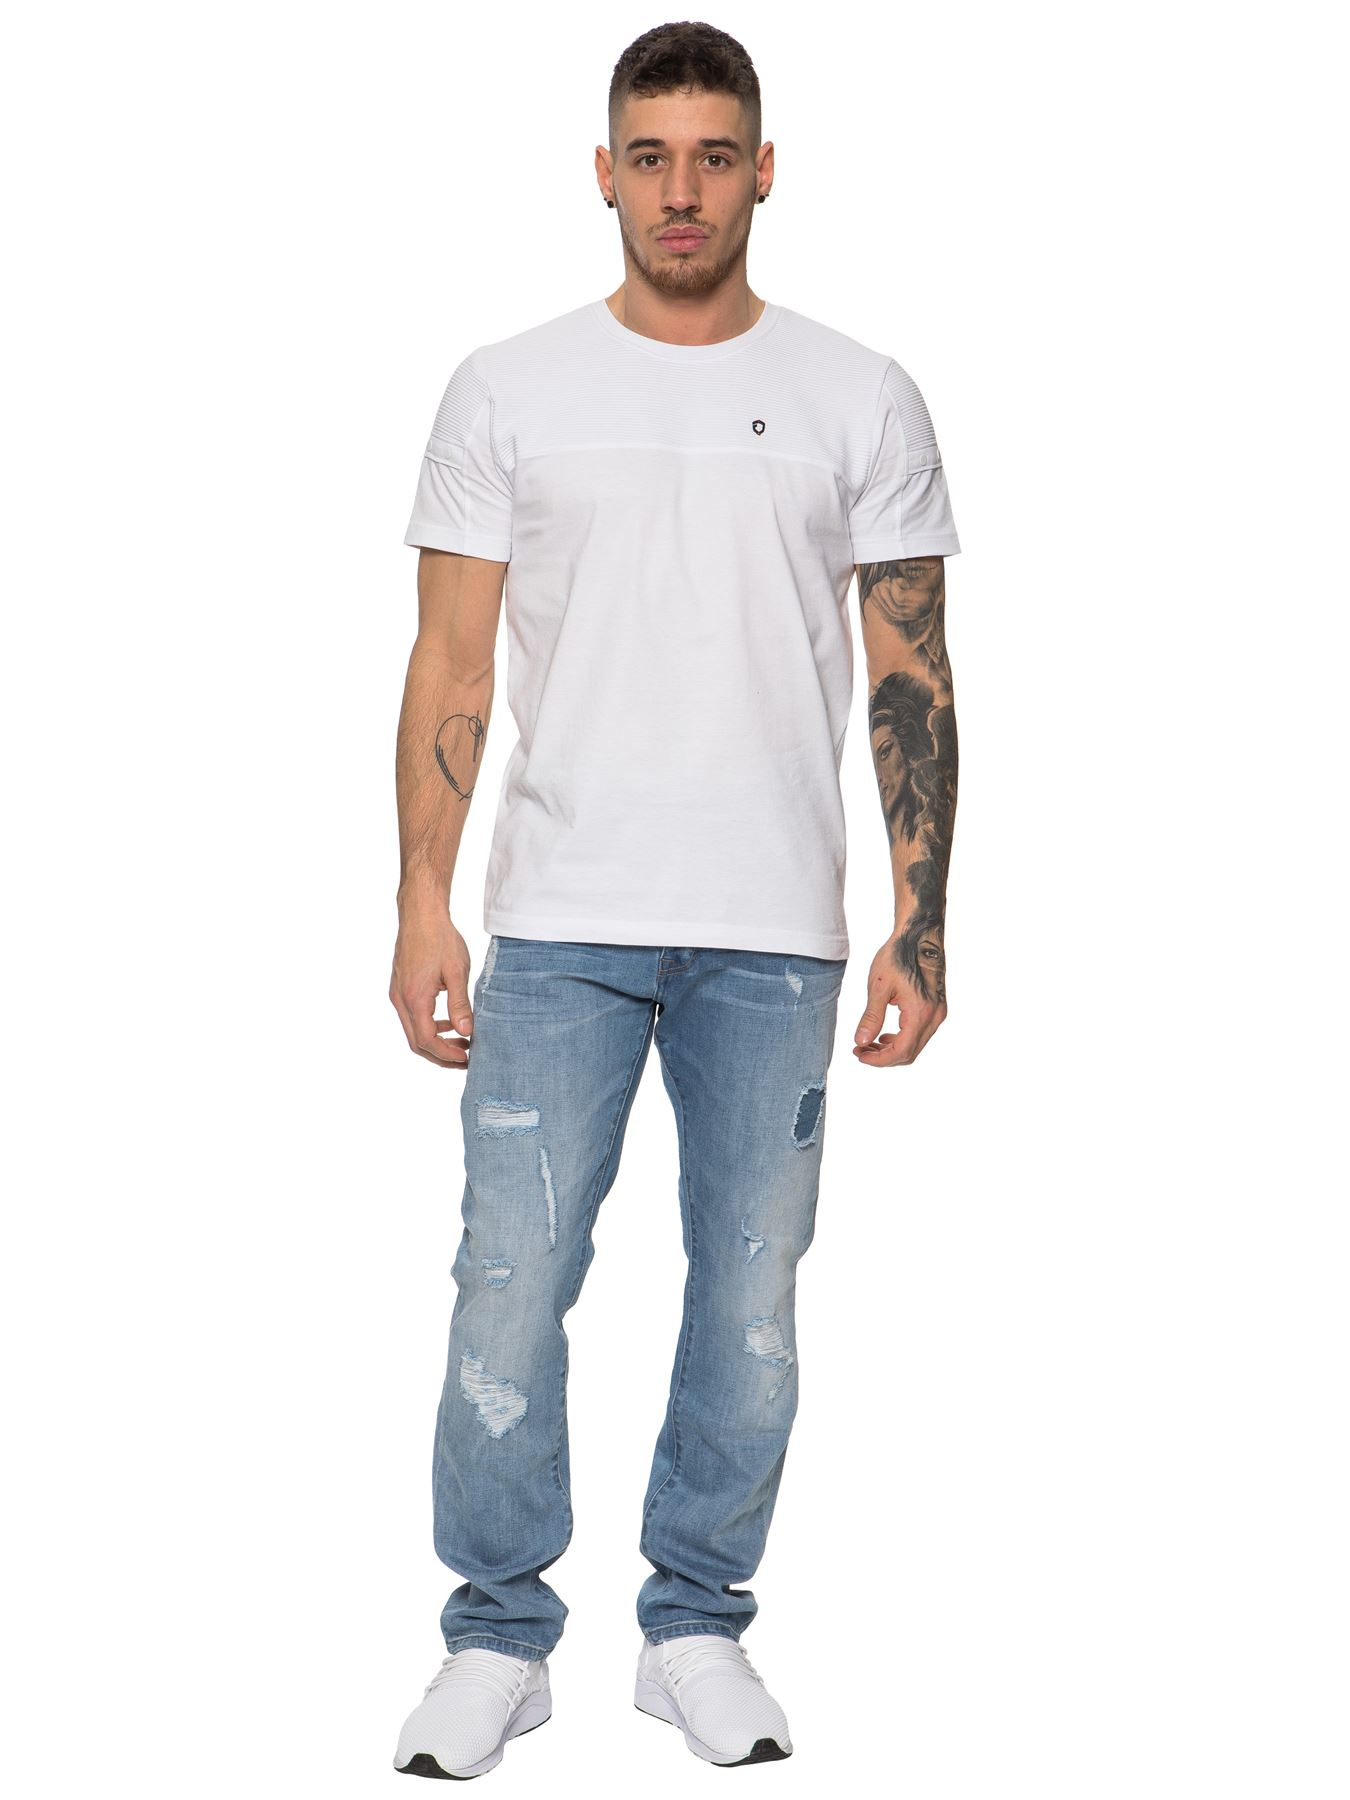 ETO-Designer-Mens-Ripped-Blue-Jeans-Distressed-Denim-Tapered-Fit-Trousers-Pants thumbnail 13